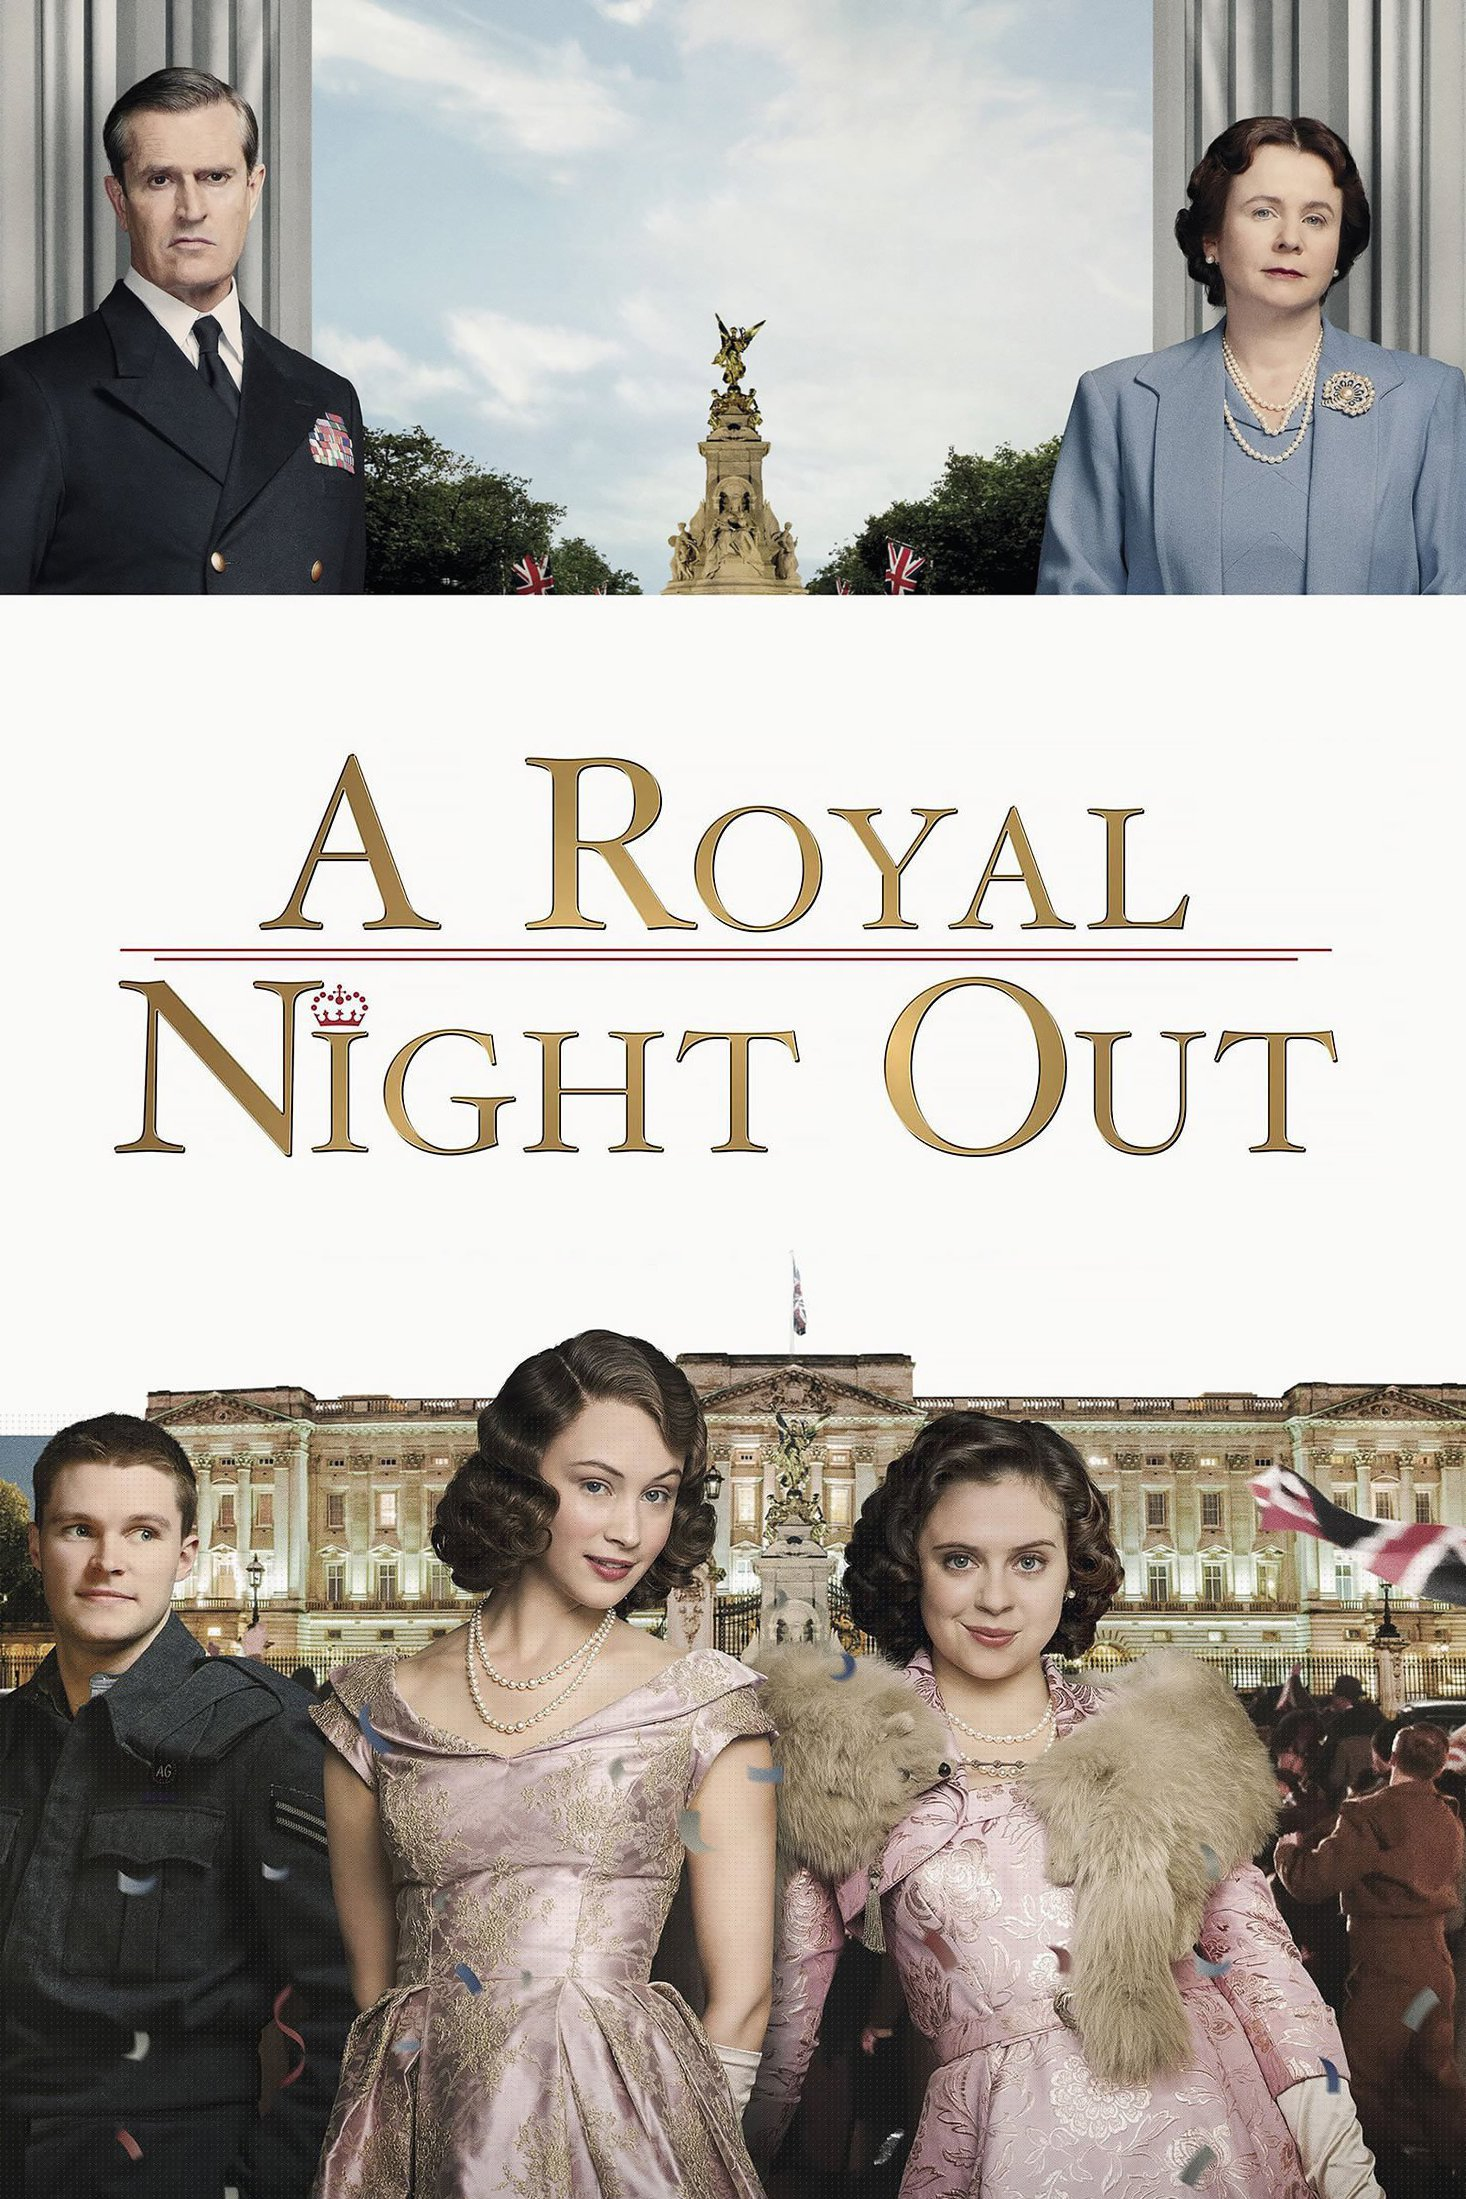 Regarder A Royal Night Out en streaming gratuit